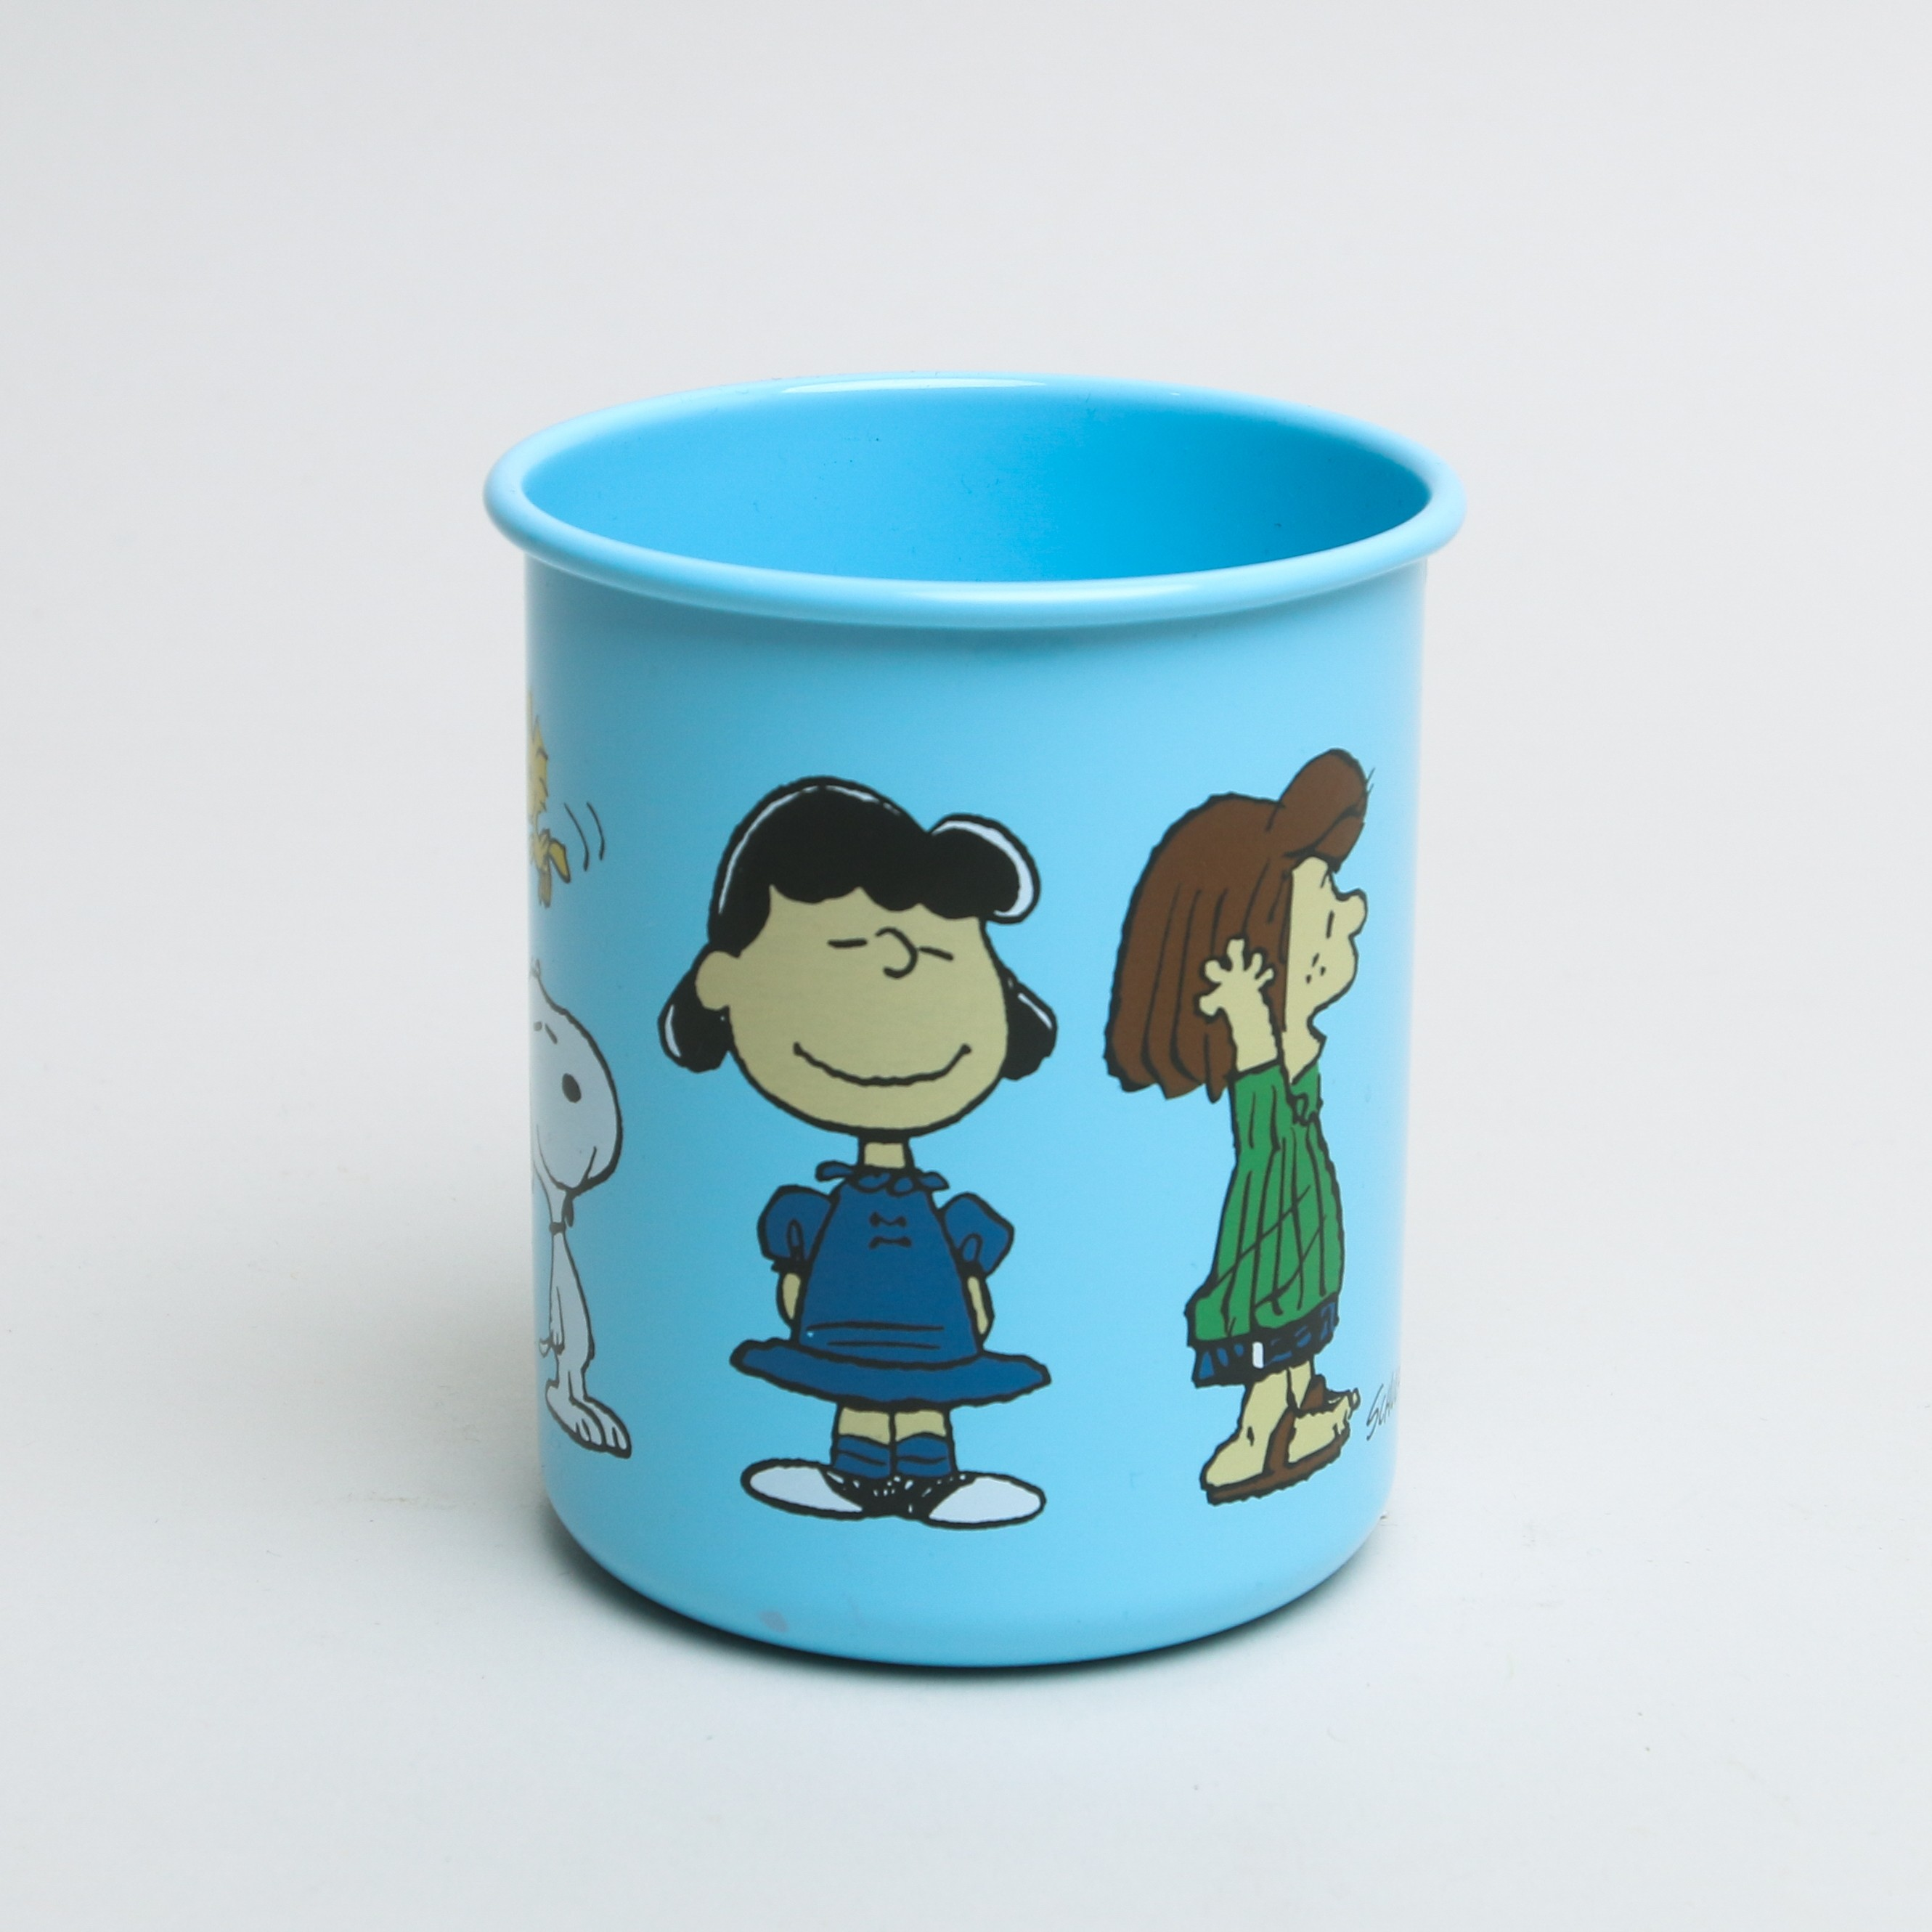 Snoopy and Friends Blue Pencil Pot